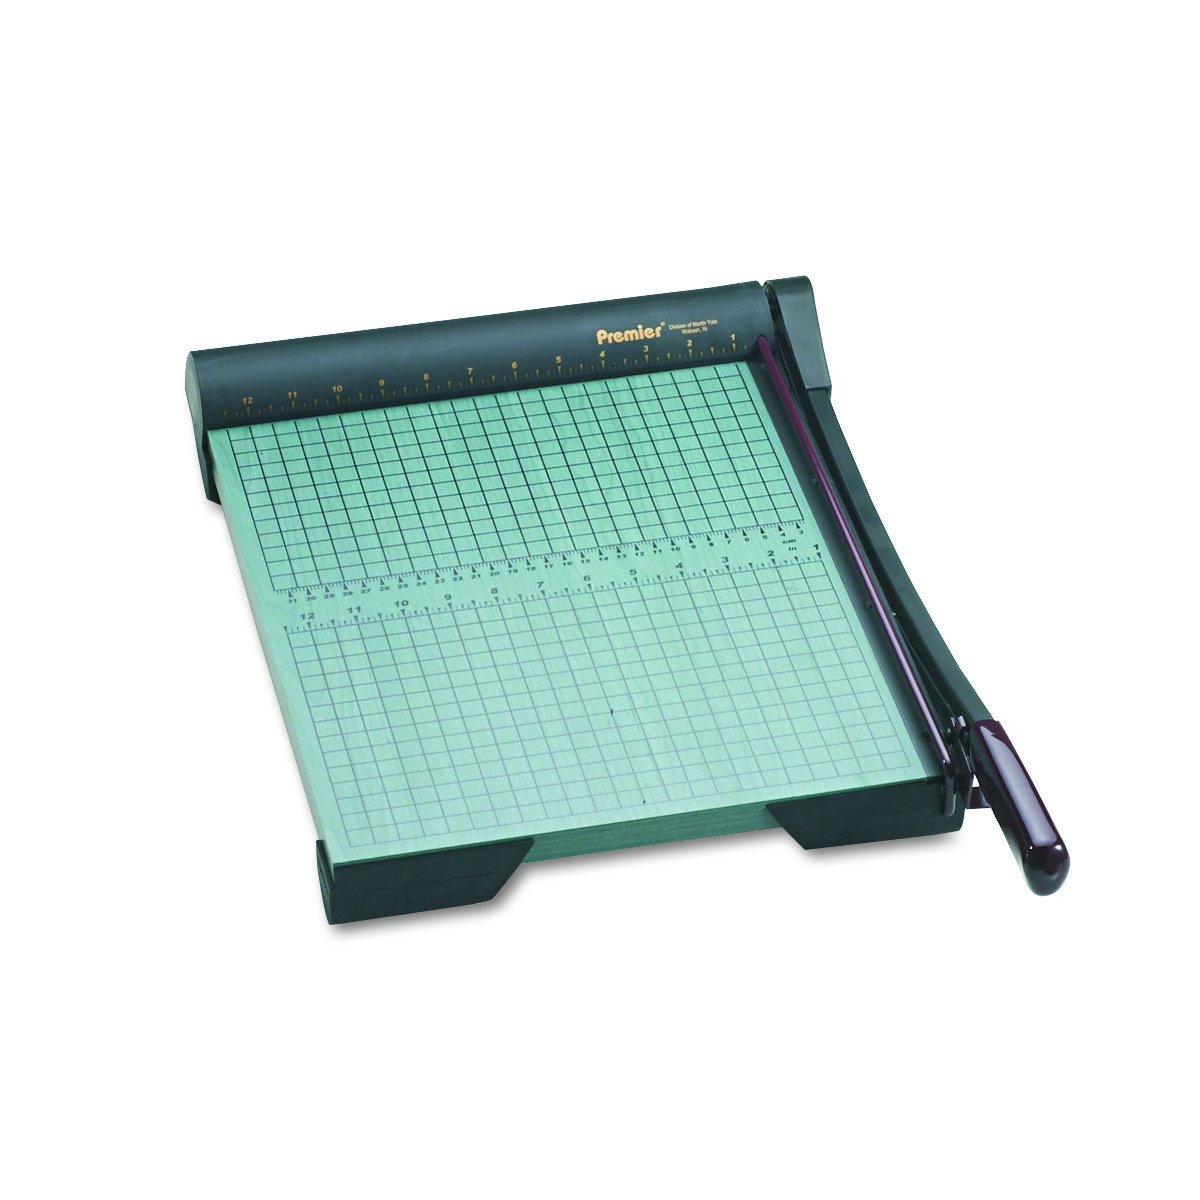 Premier Heavy-Duty Green Board Wood Trimmer, Cut Up to 20 Sheets at One Time, Steel Blades, 15 Inches, Green (PREW15)